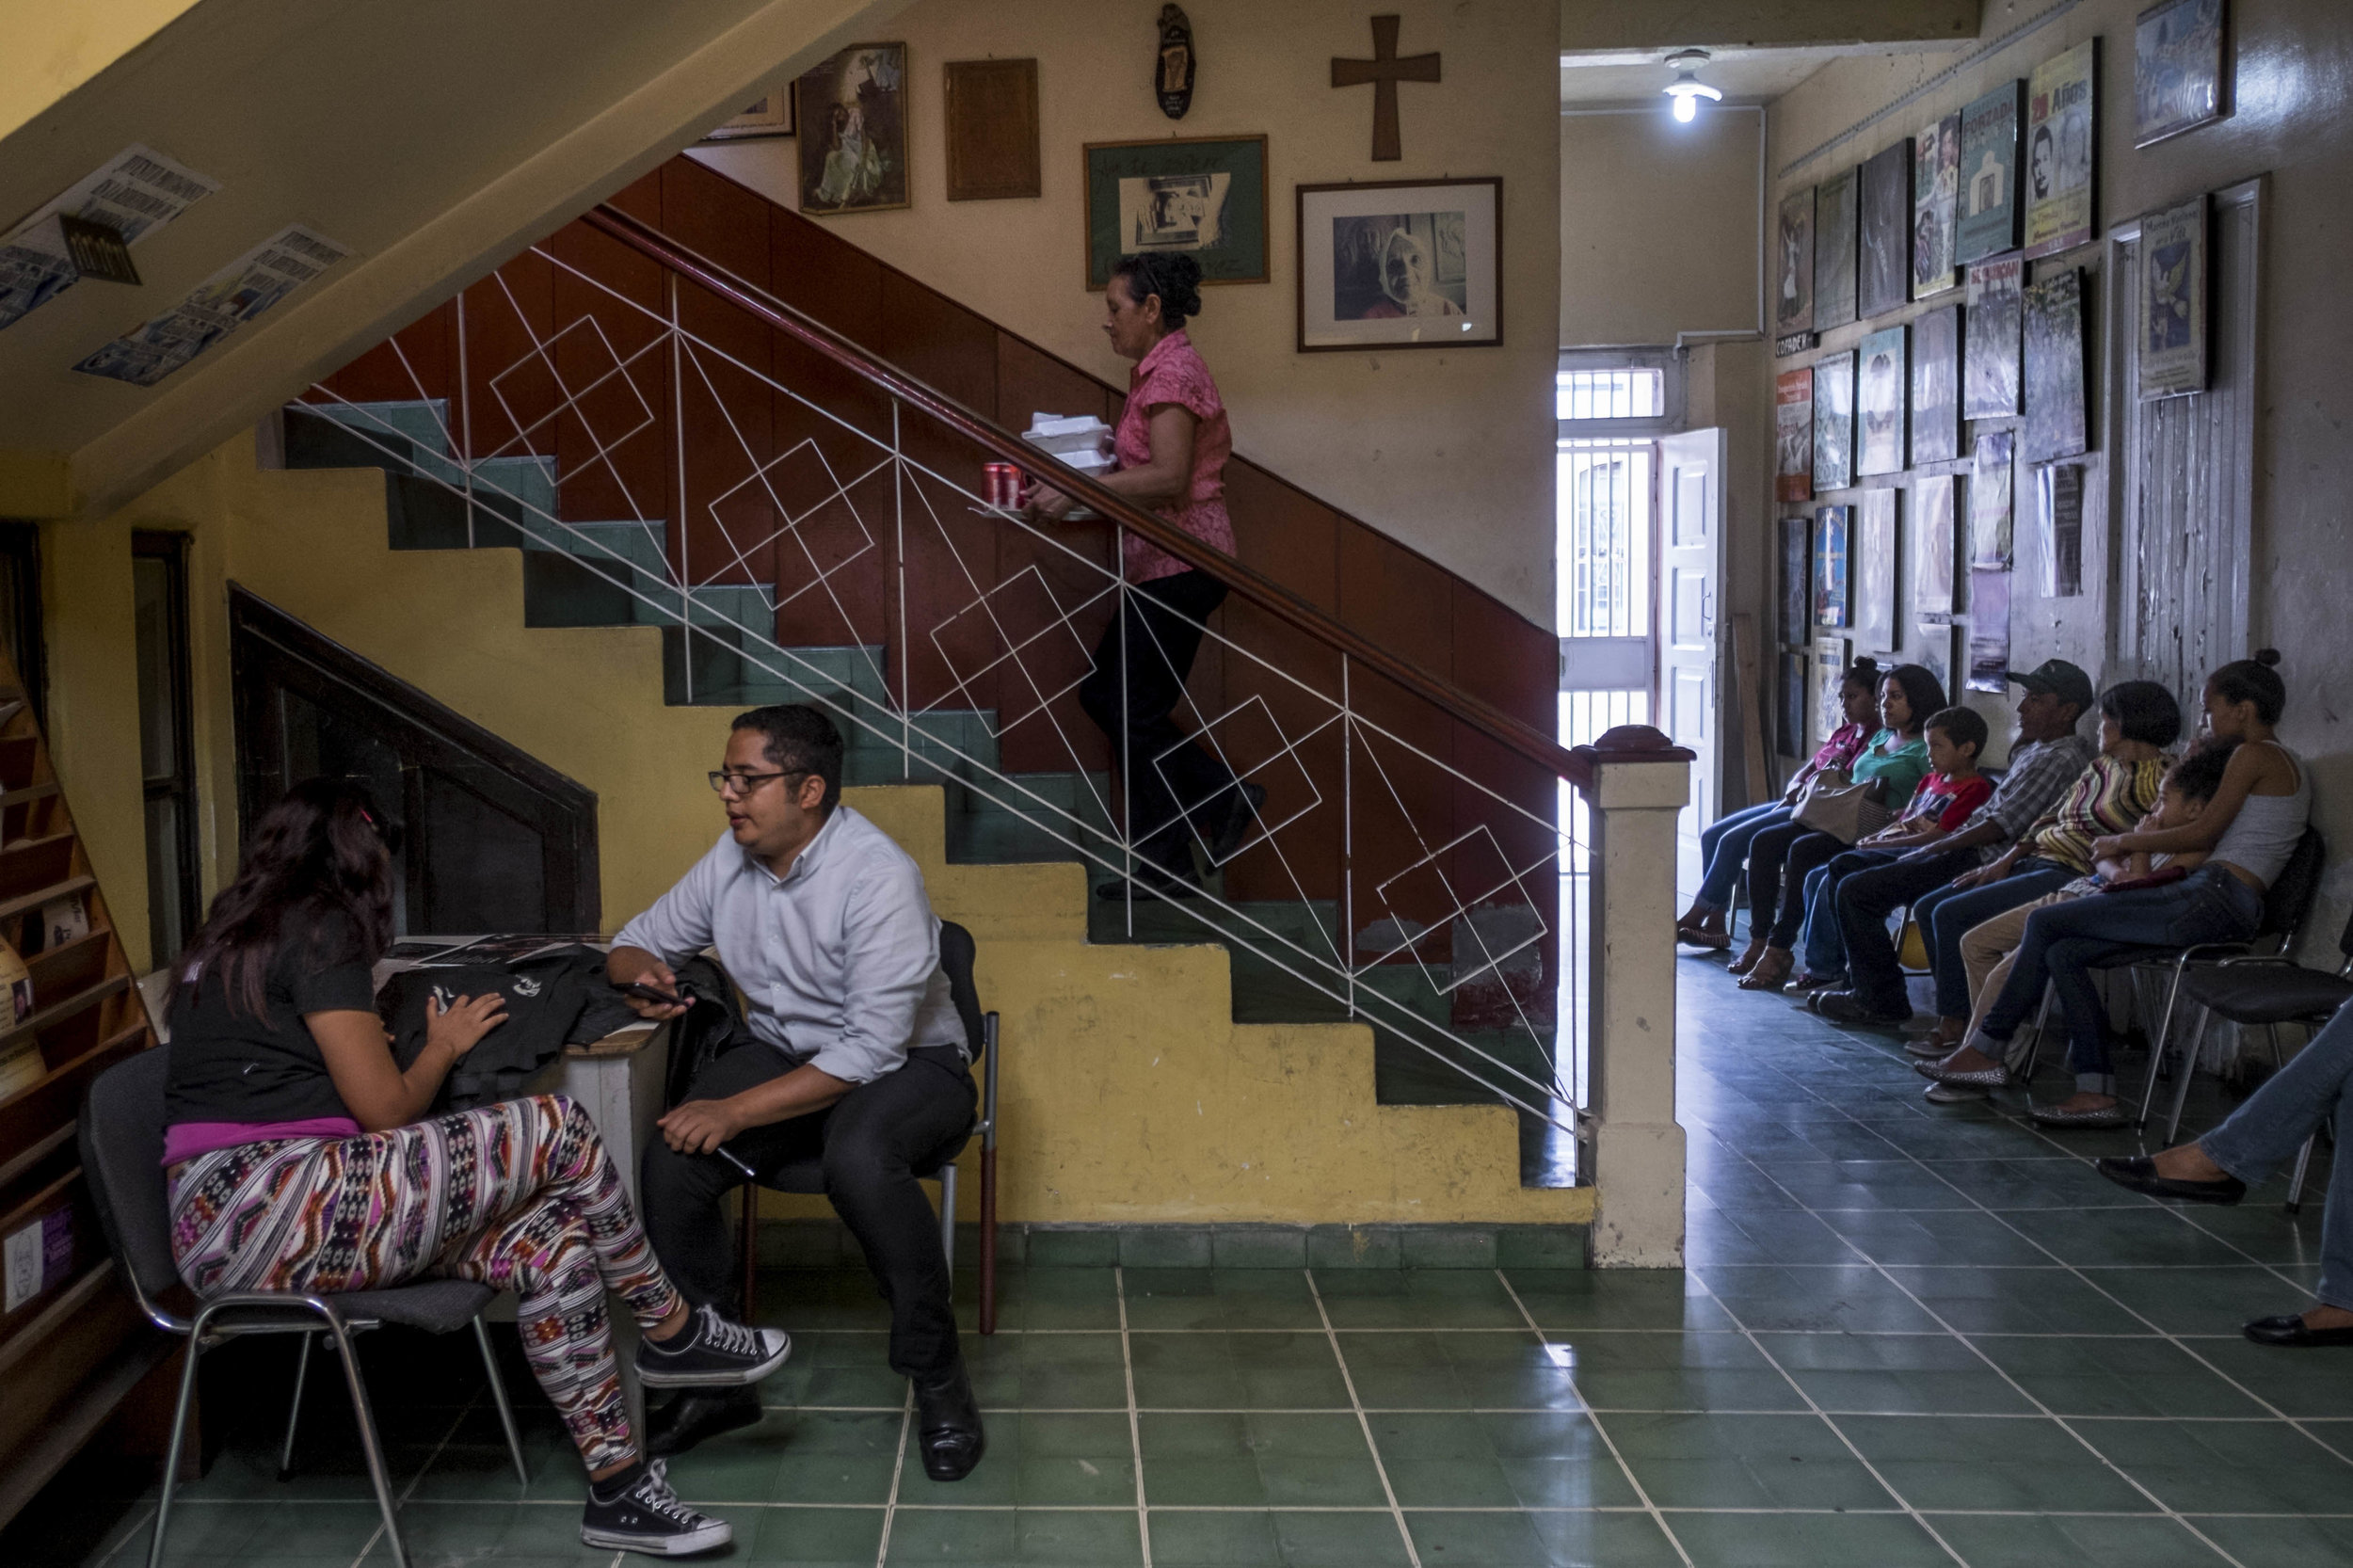 Inside the headquarters of COFADEH (Committee for Relatives of the Disappeared in Honduras), an organization that documents human rights violations, and works to help the relatives of victims of enforced disappearances and assassinations.